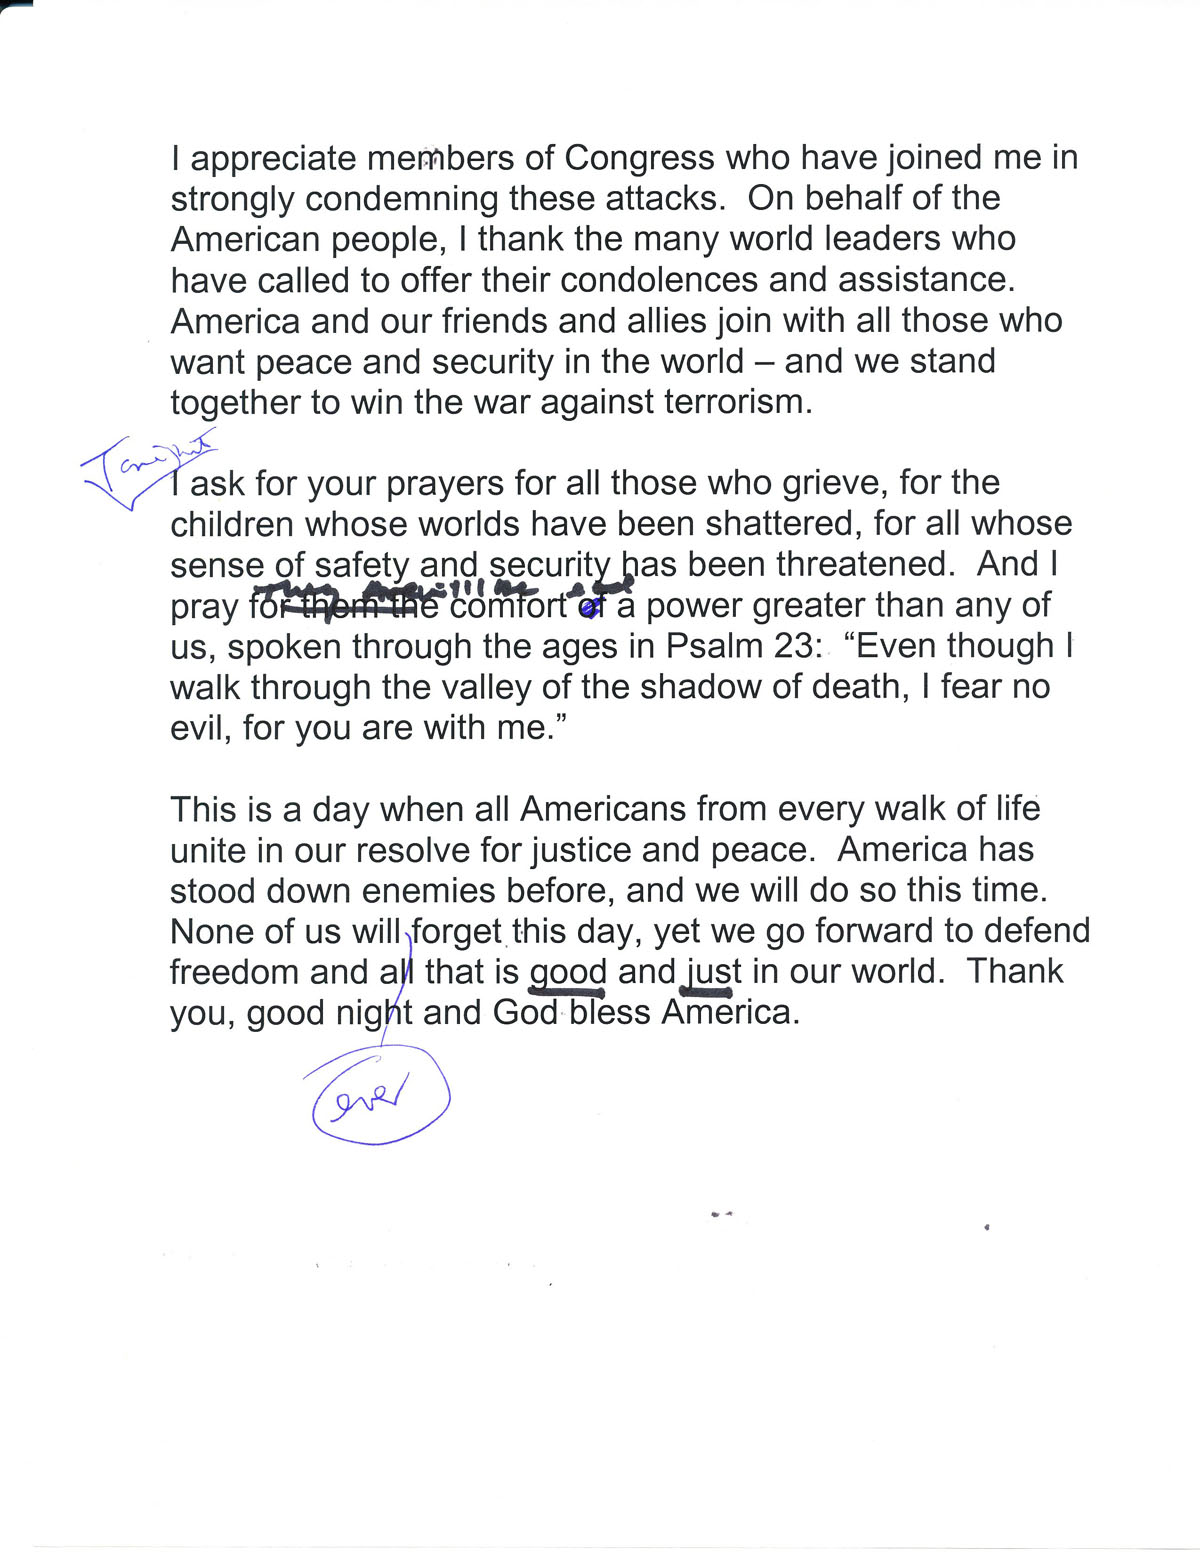 9 11 info speech outlines The text of president bush's address tuesday night, after terrorist attacks on new york and washington.